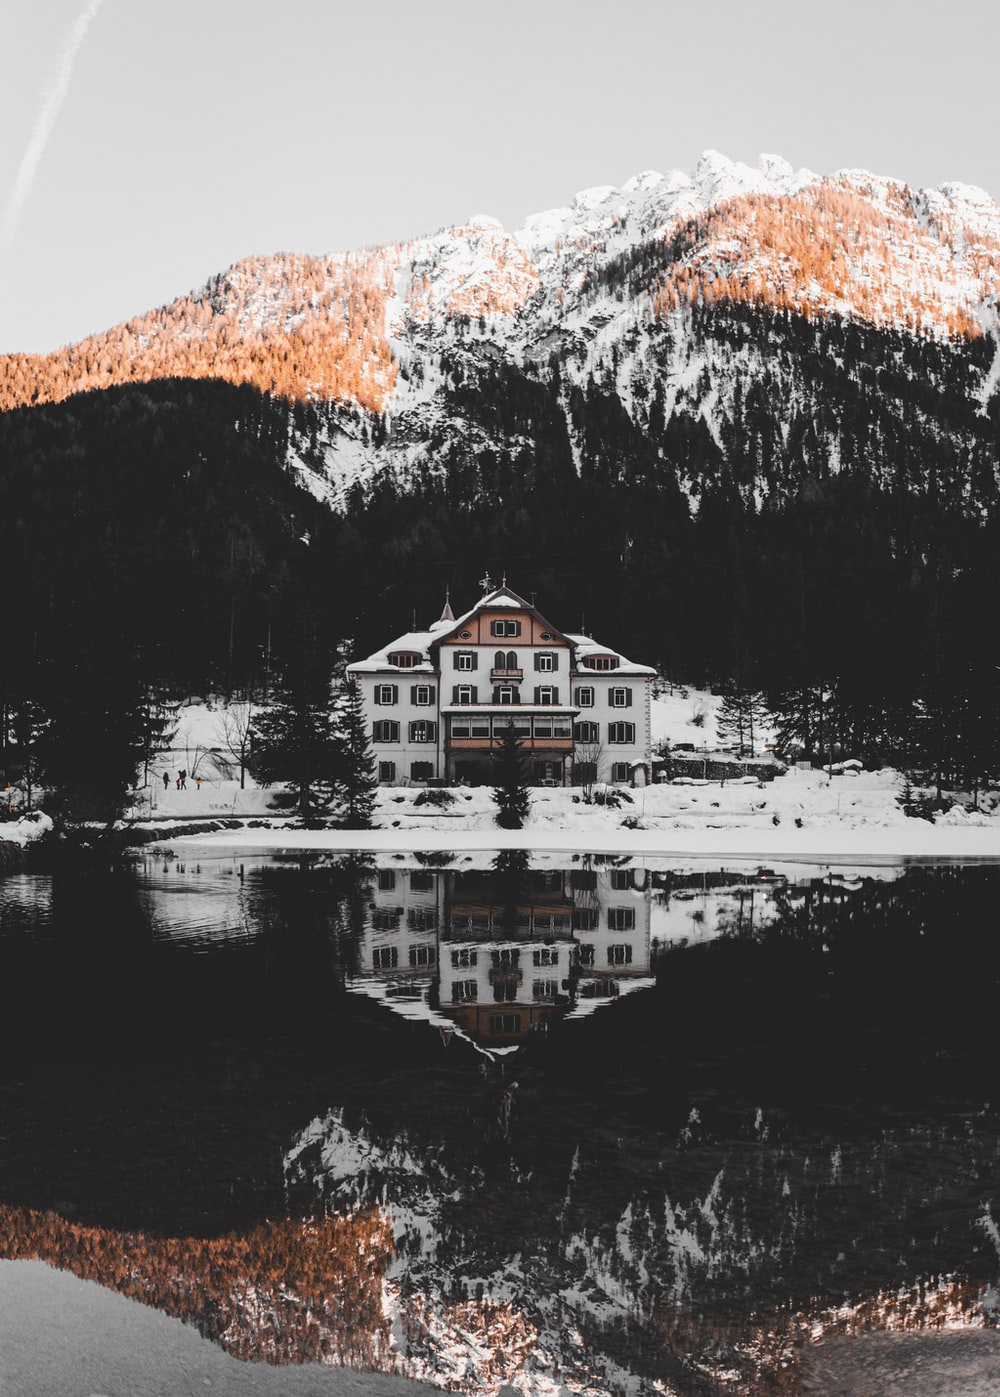 white and brown house near body of water